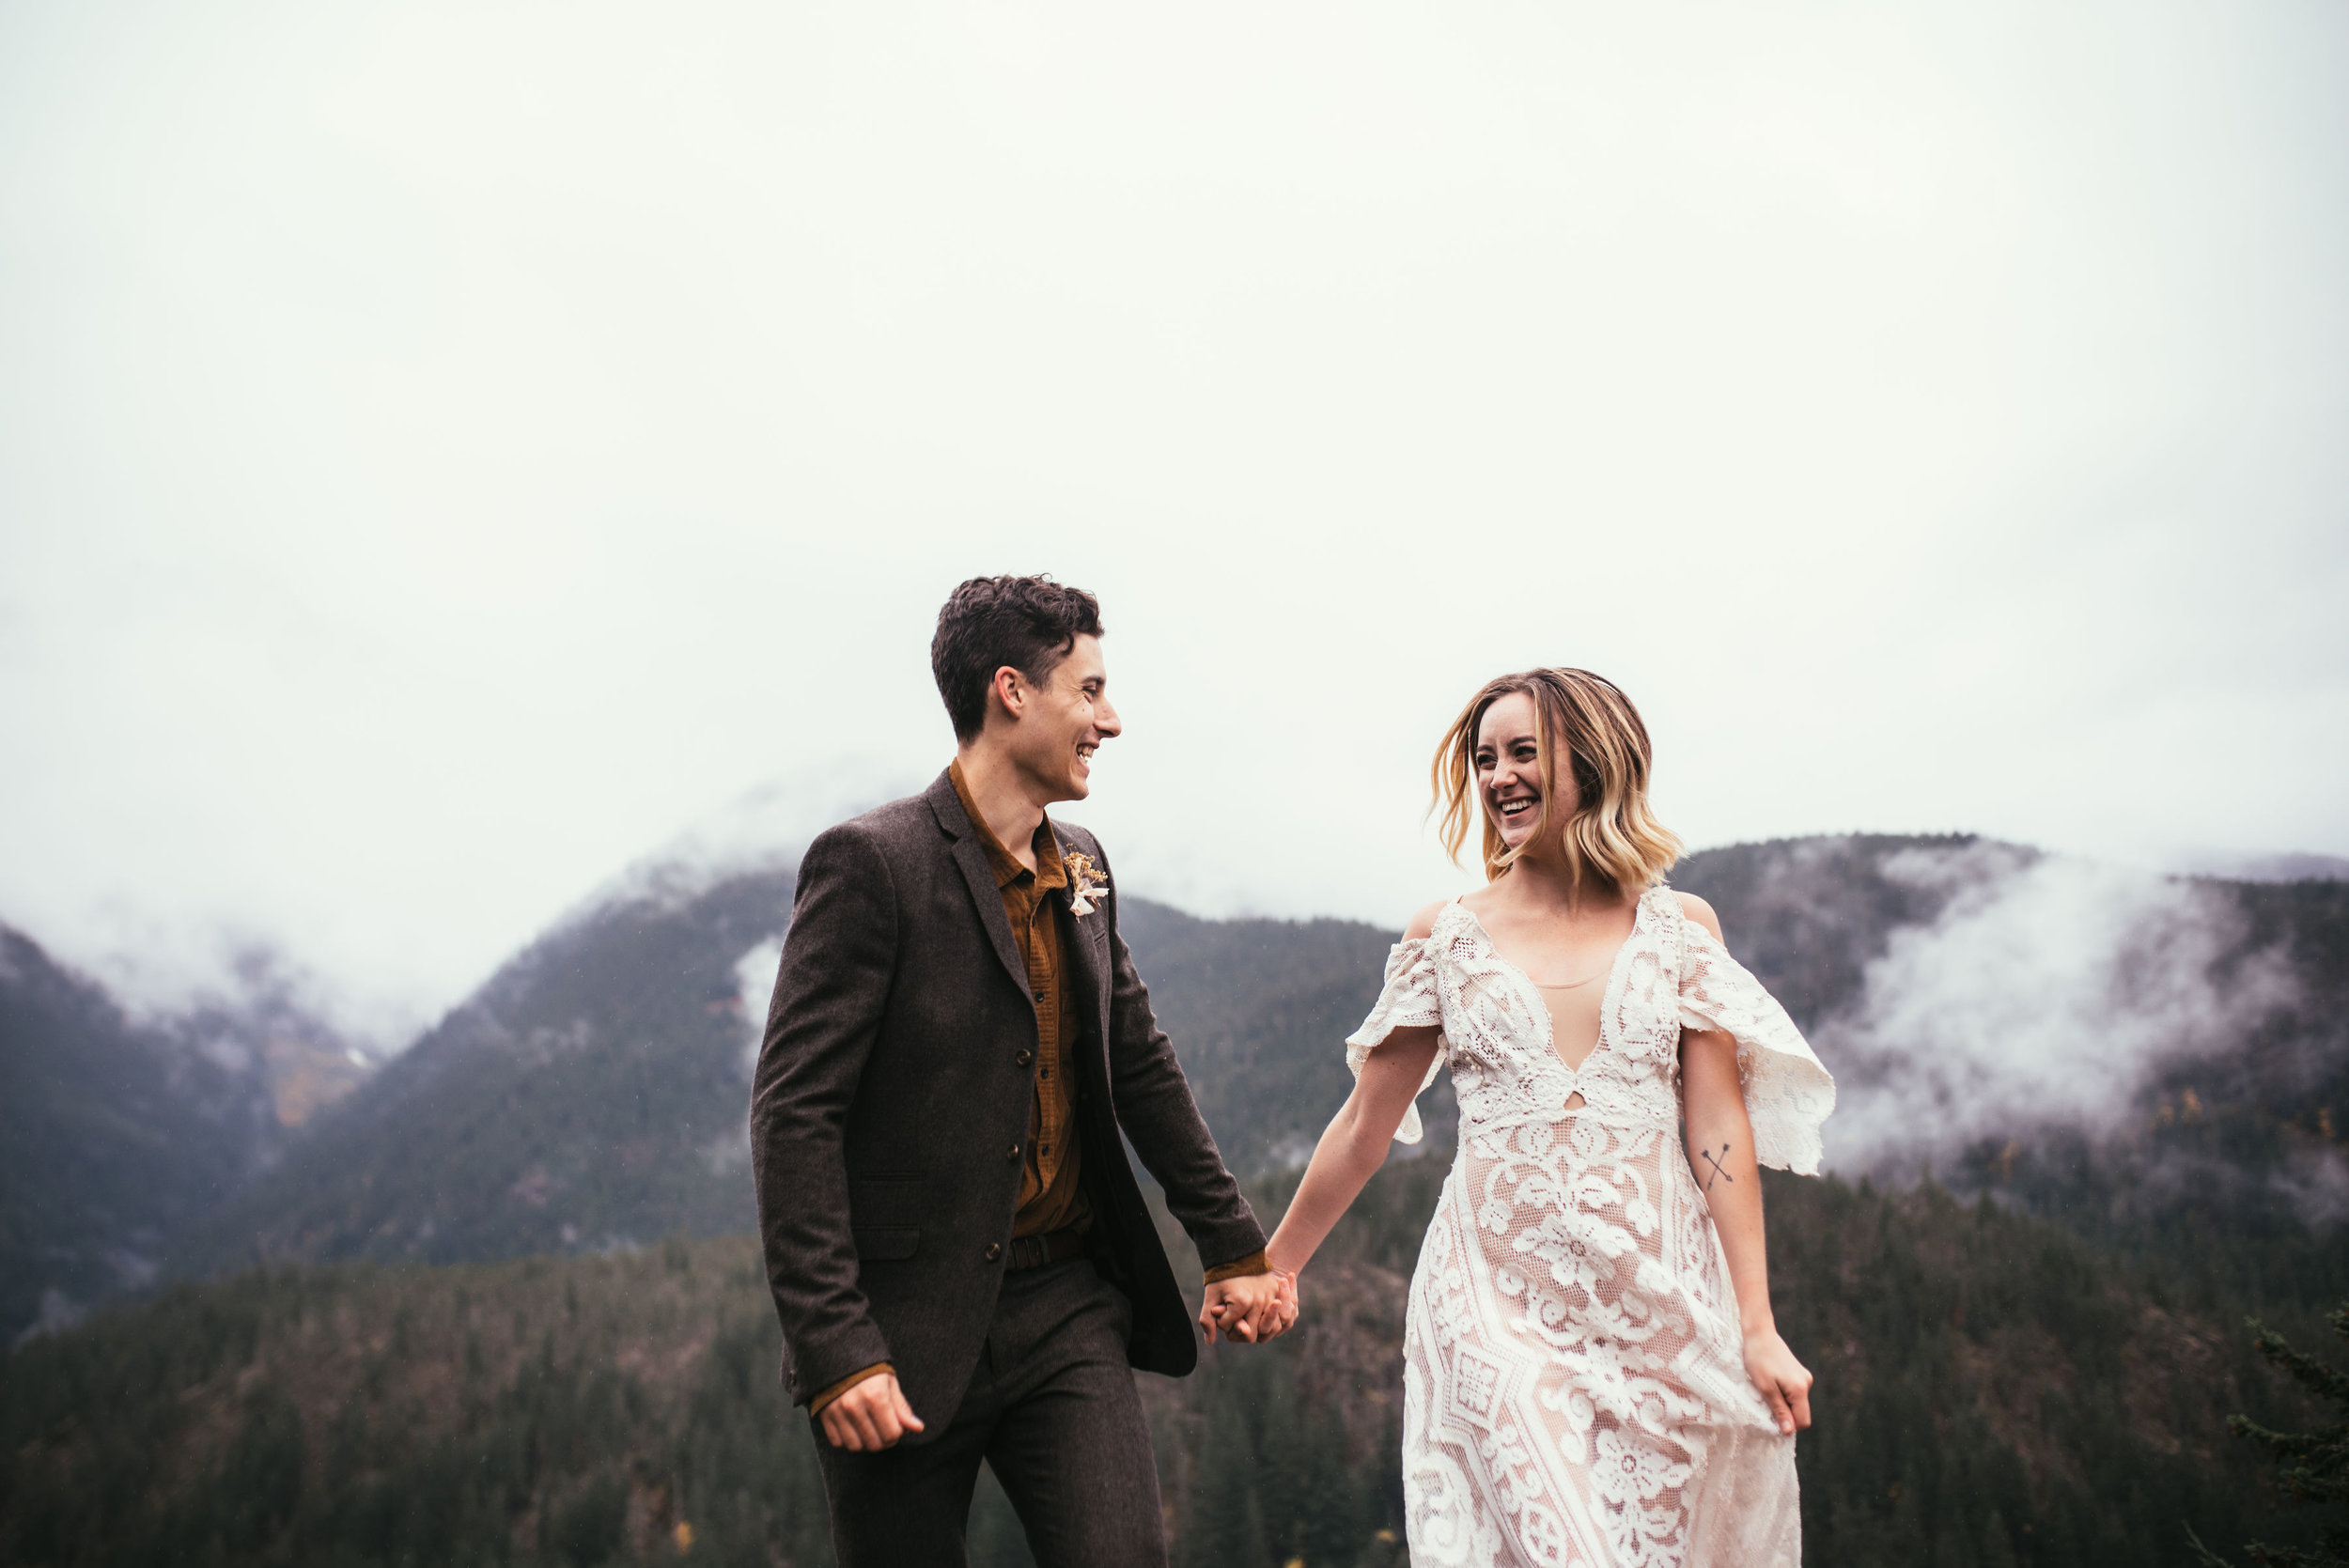 North Cascades Elopement - Pacific NorthWest Photographer - North Cascades Elopement - Washington Wedding Photographer